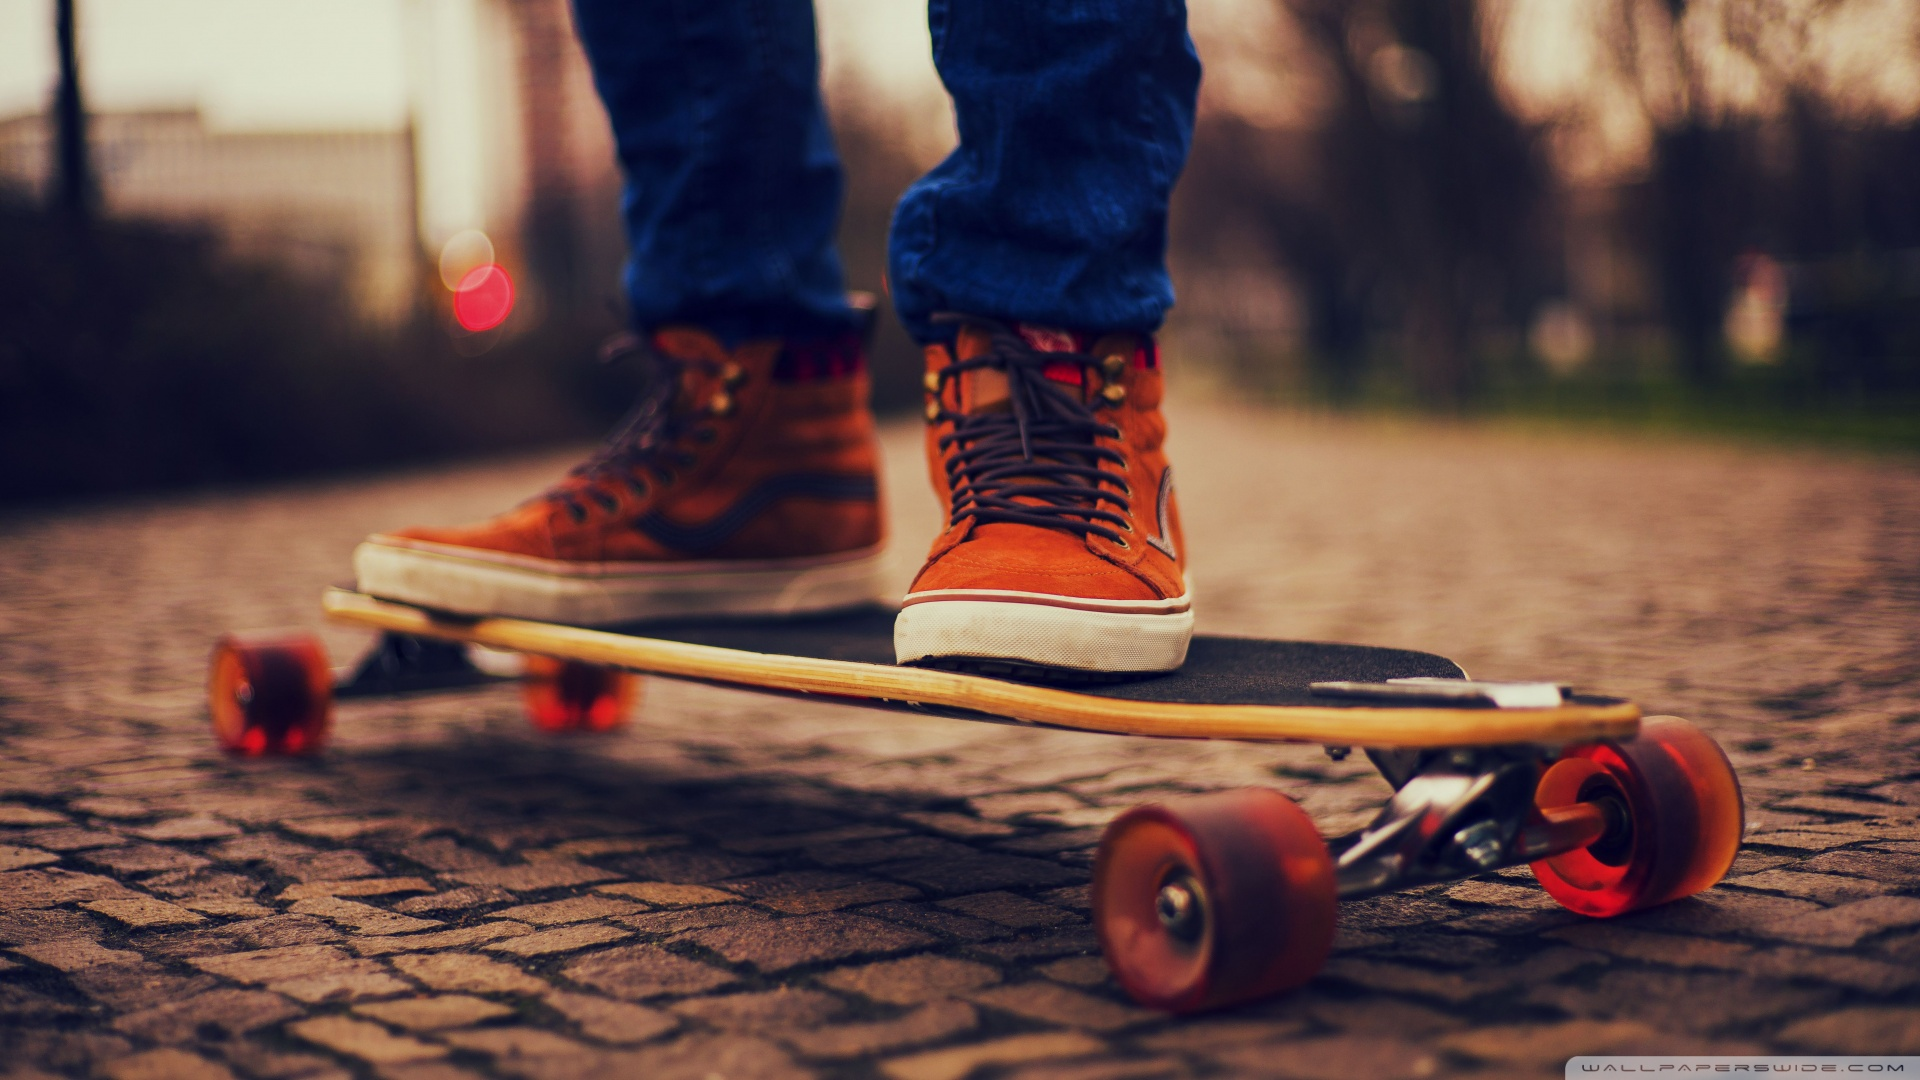 Longboard Wallpaper Background